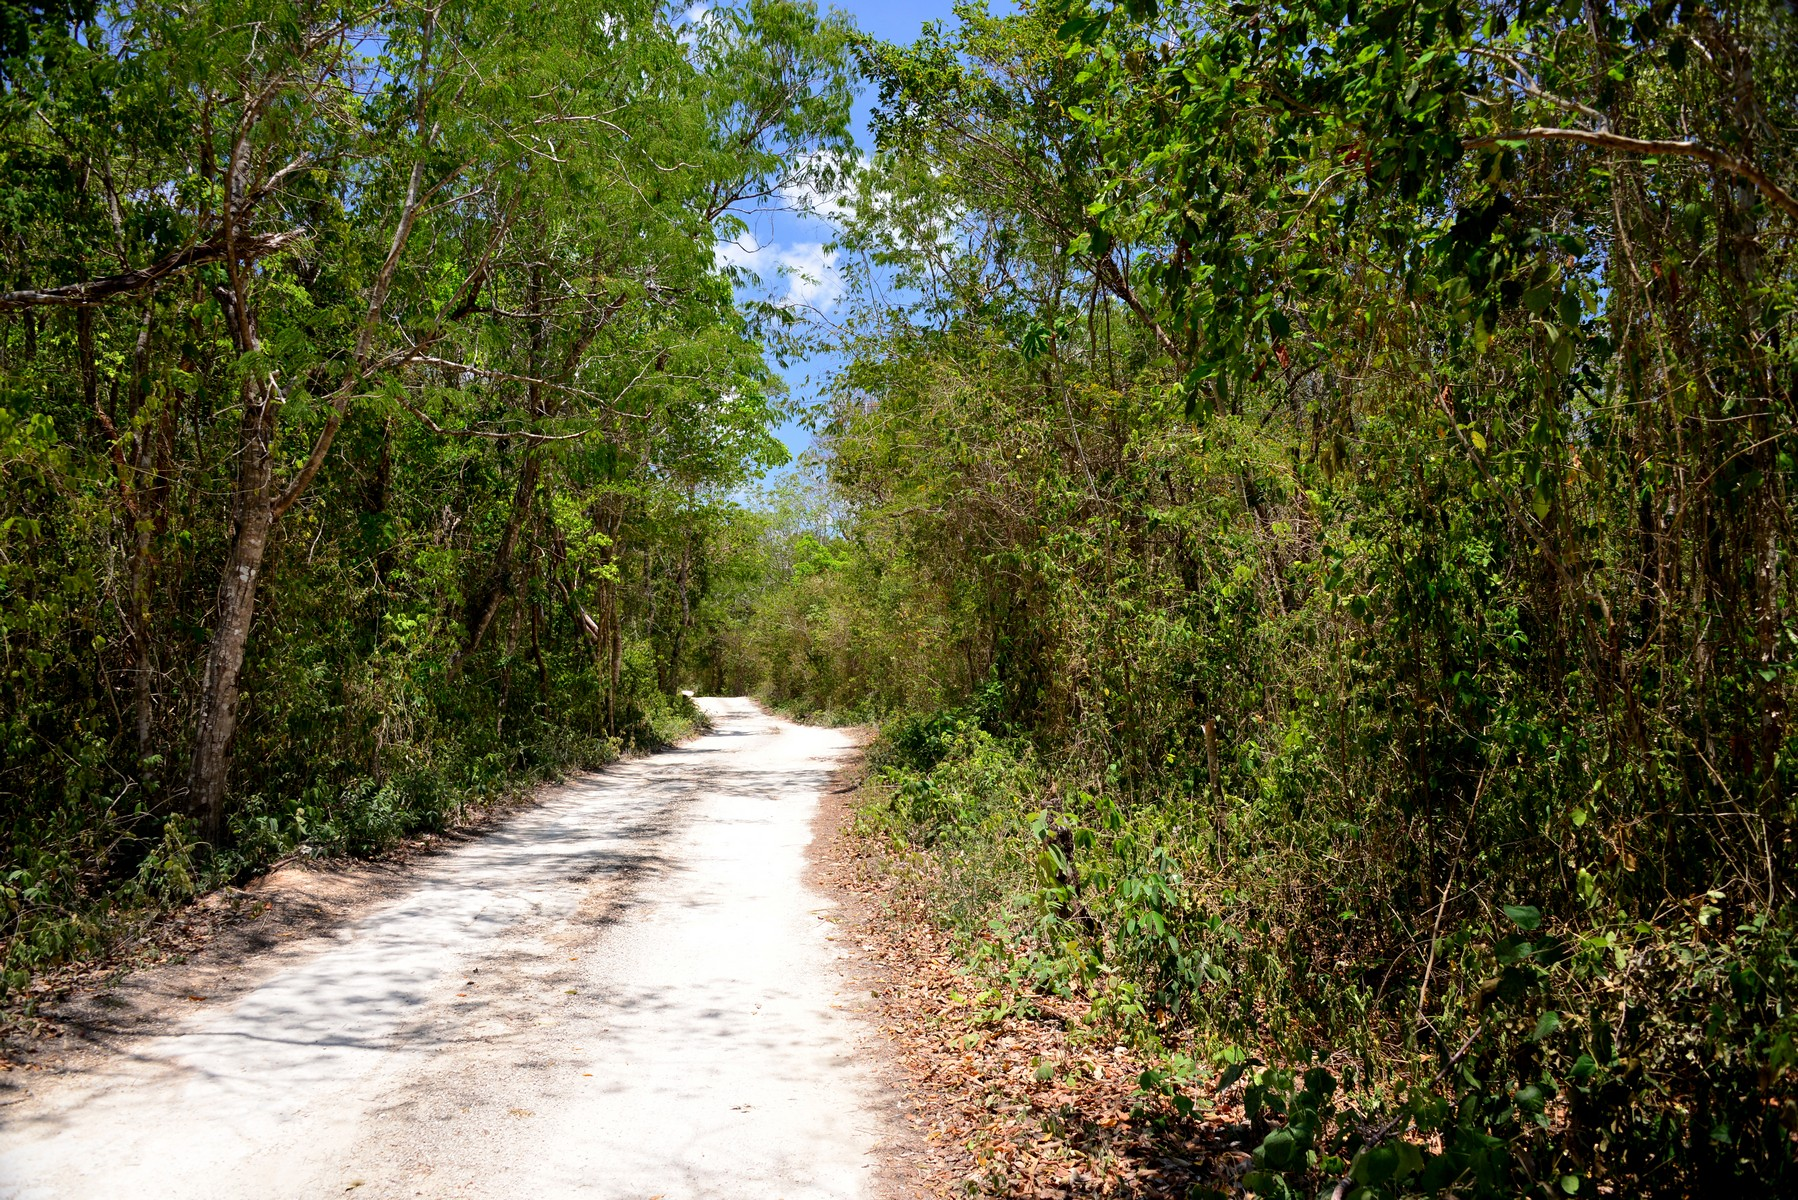 Additional photo for property listing at LOTS 6 AND 7 8TH REGION LOTS 6 AND 7 8TH REGION Manzana 668 de la zona 8 Tulum, Quintana Roo 77760 Mexico